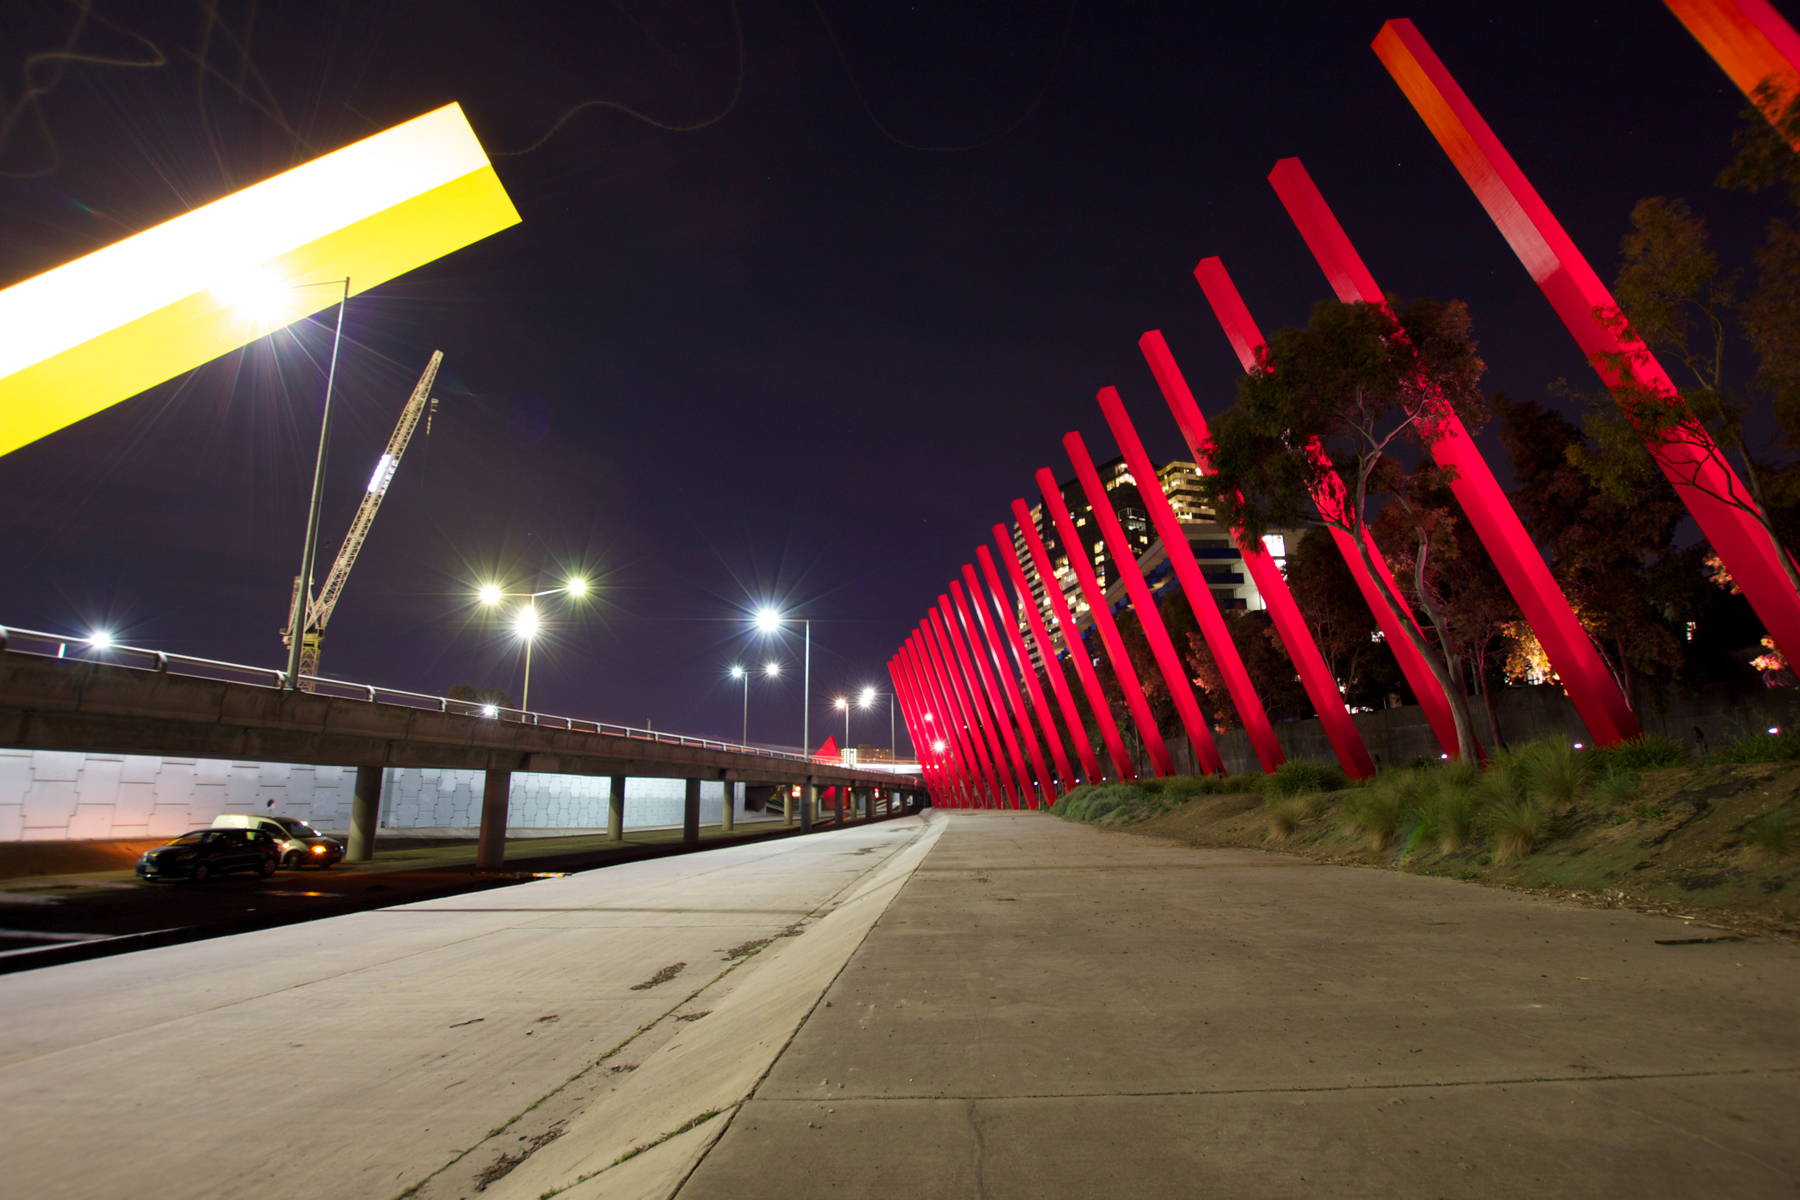 Red Sticks Installation Artwork Outdoor LED Custom Architectural Lighting